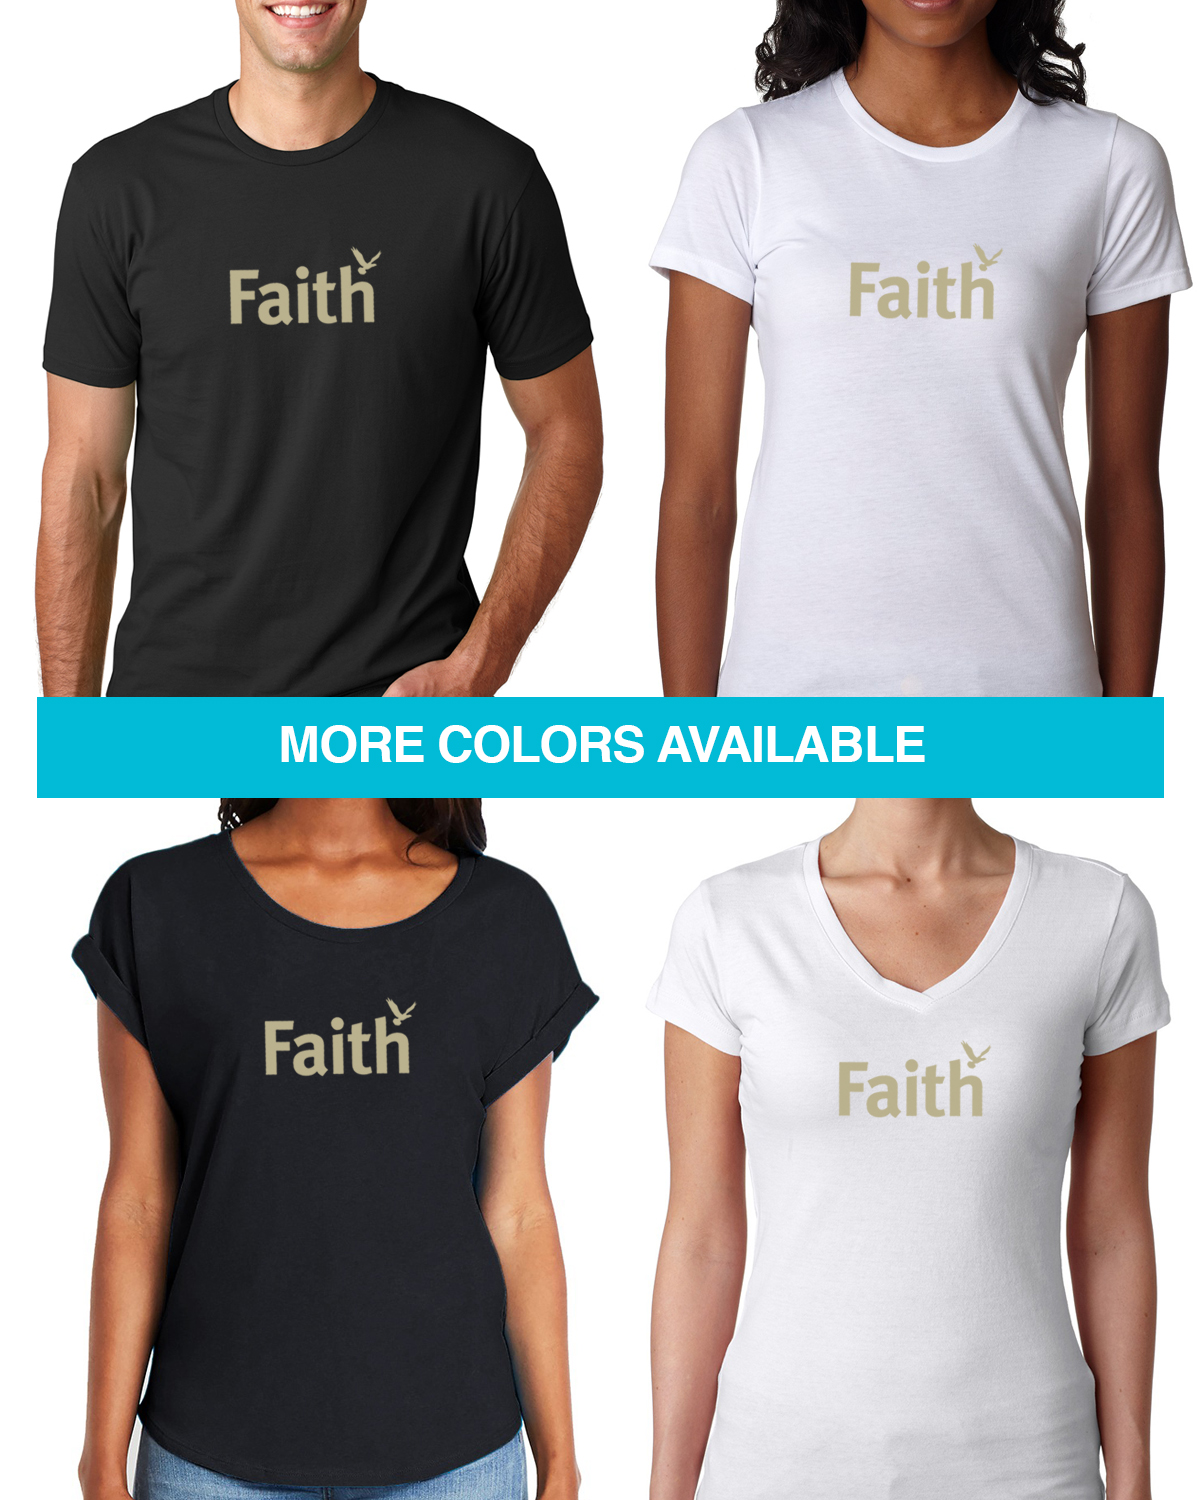 Short sleeve inspirational word ' faith' t-shirt for men and women